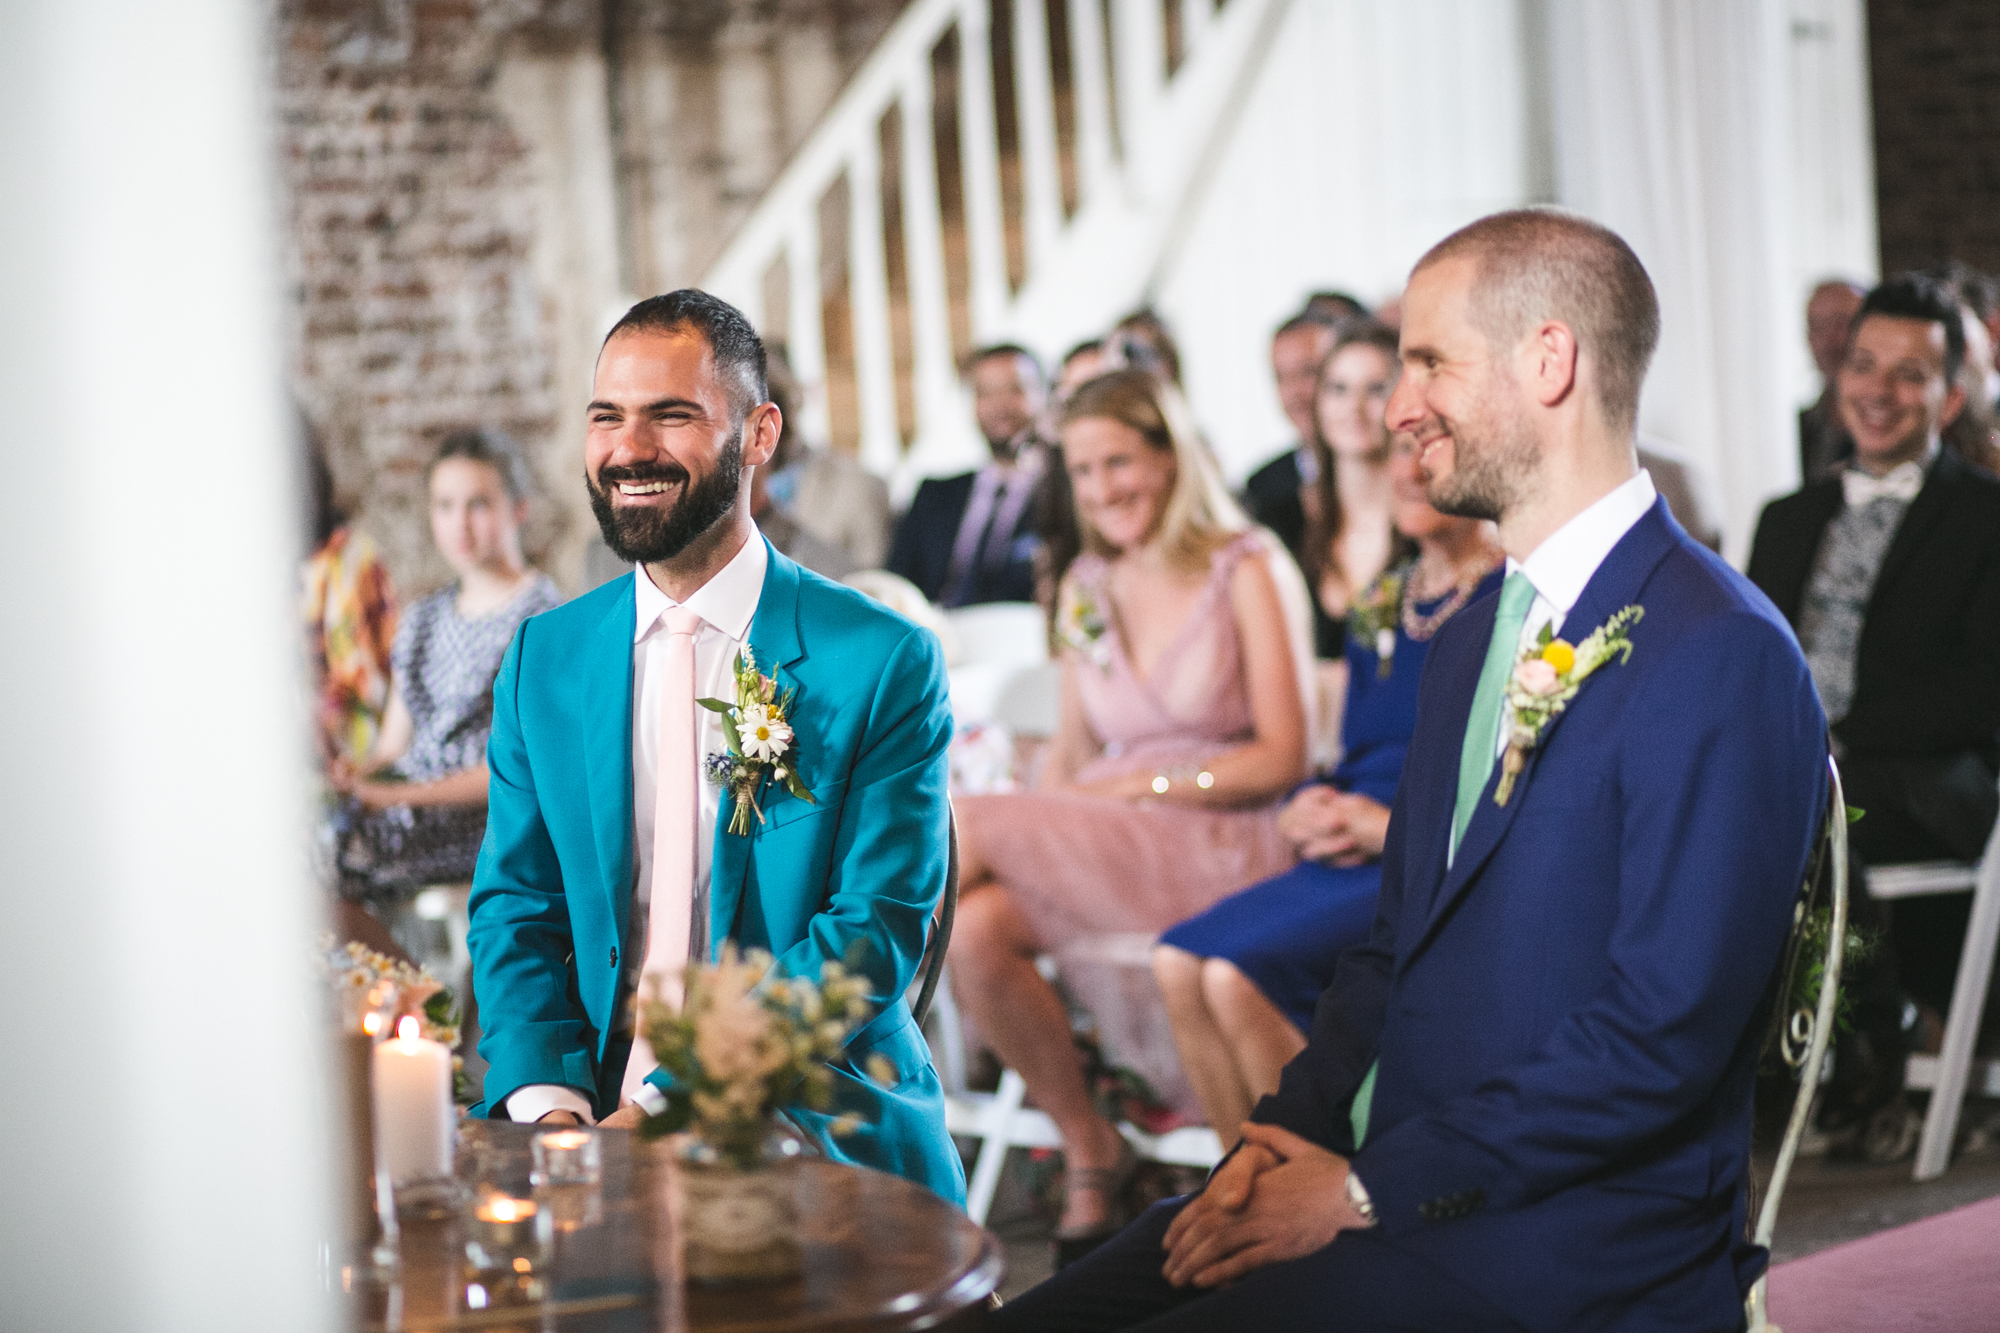 Gay weddings Ireland Millhouse-92.jpg